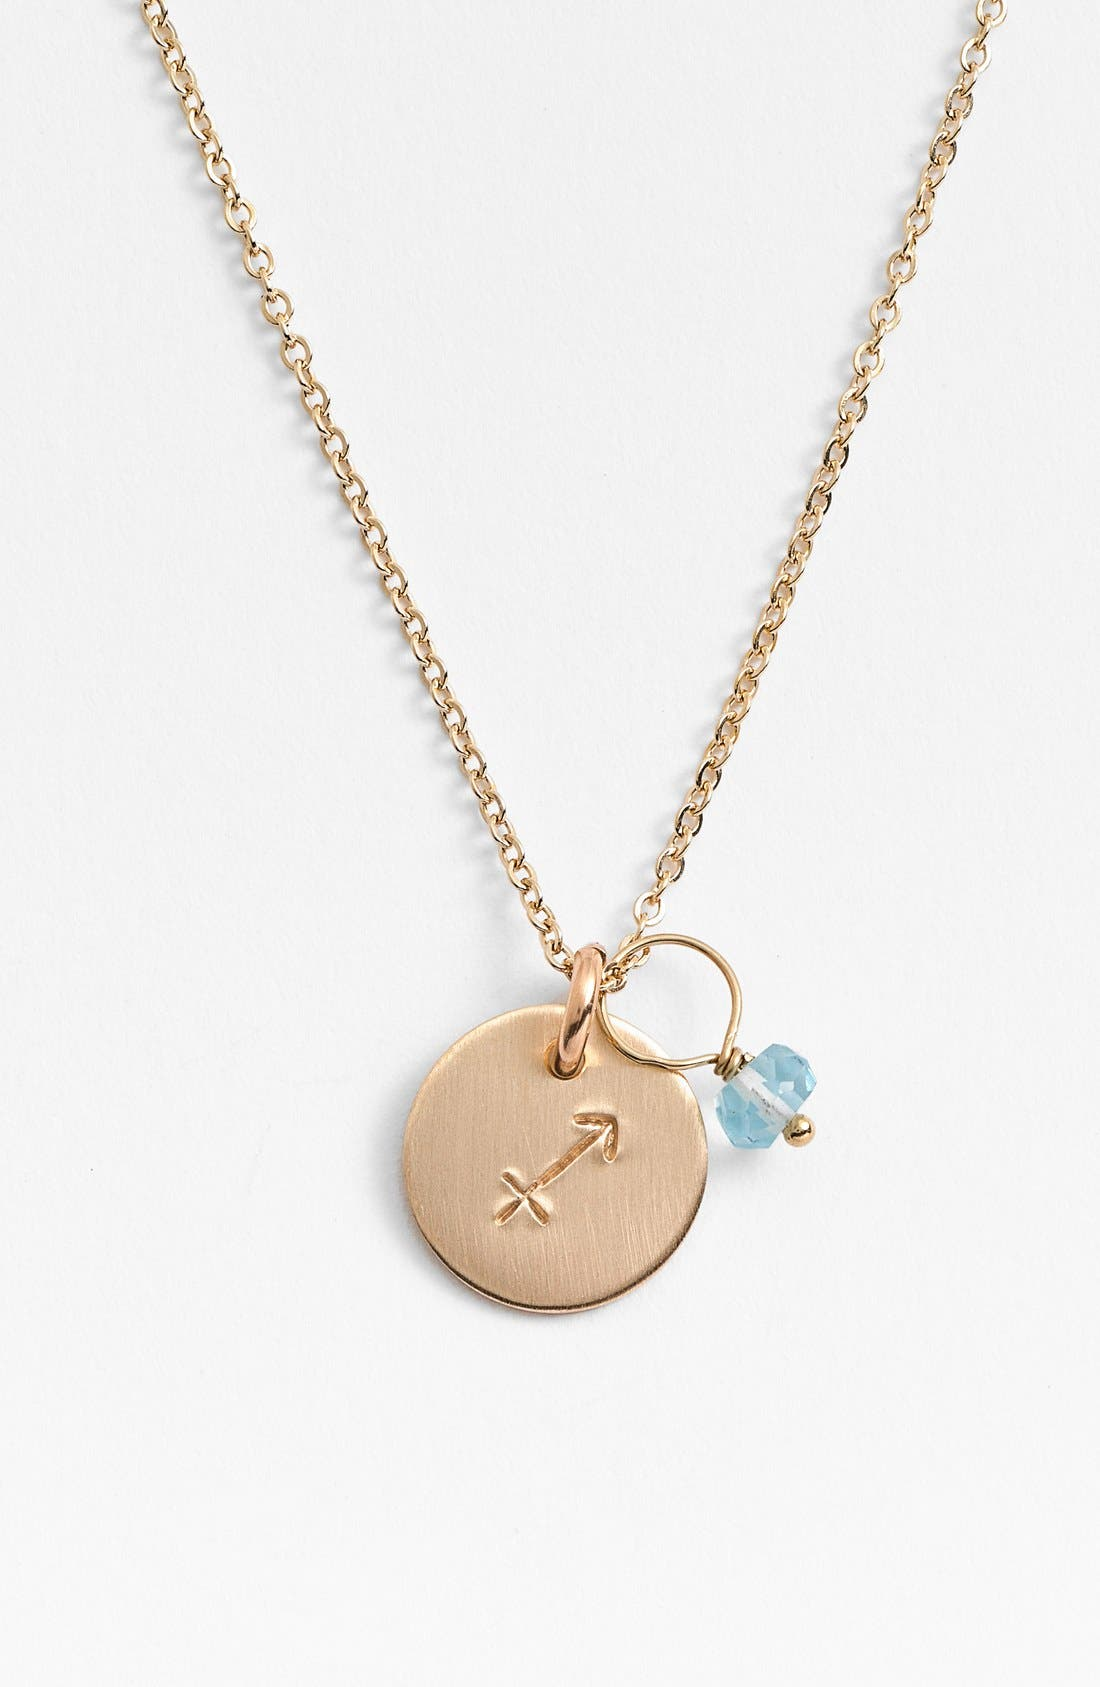 14k-Gold Fill & Semiprecious Birthstone Zodiac Mini Disc Necklace,                             Main thumbnail 1, color,                             Sagittarius